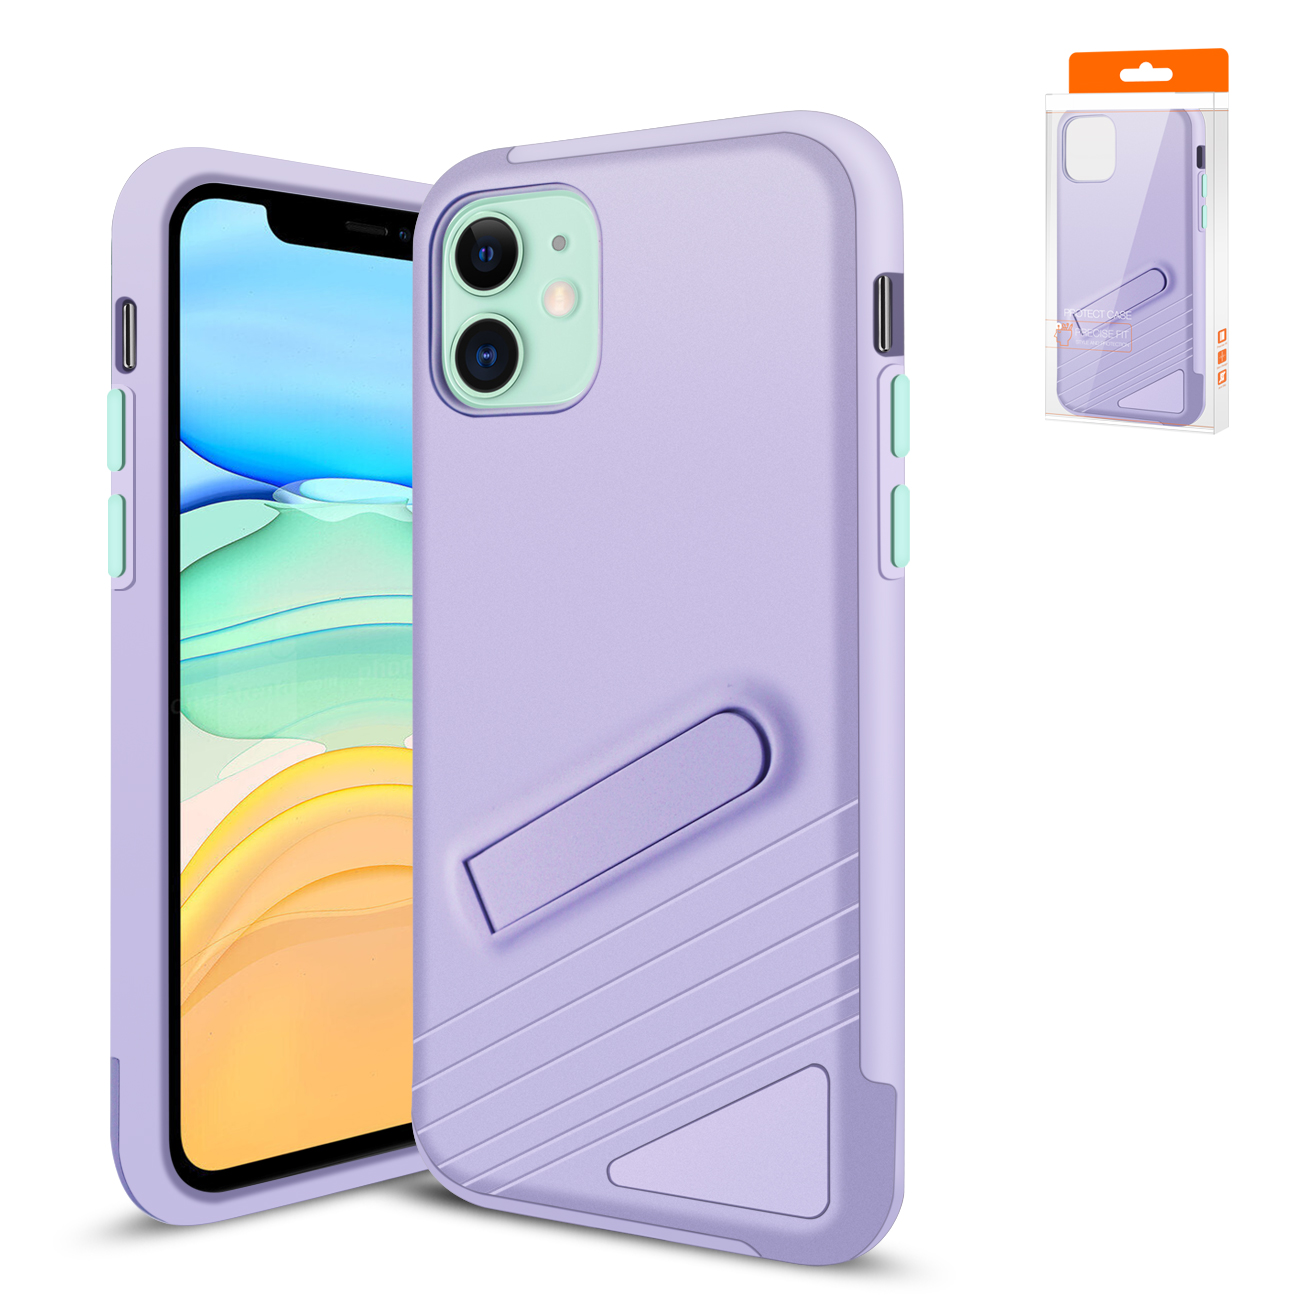 Reiko Apple iPhone 11 Armor Cases In Purple